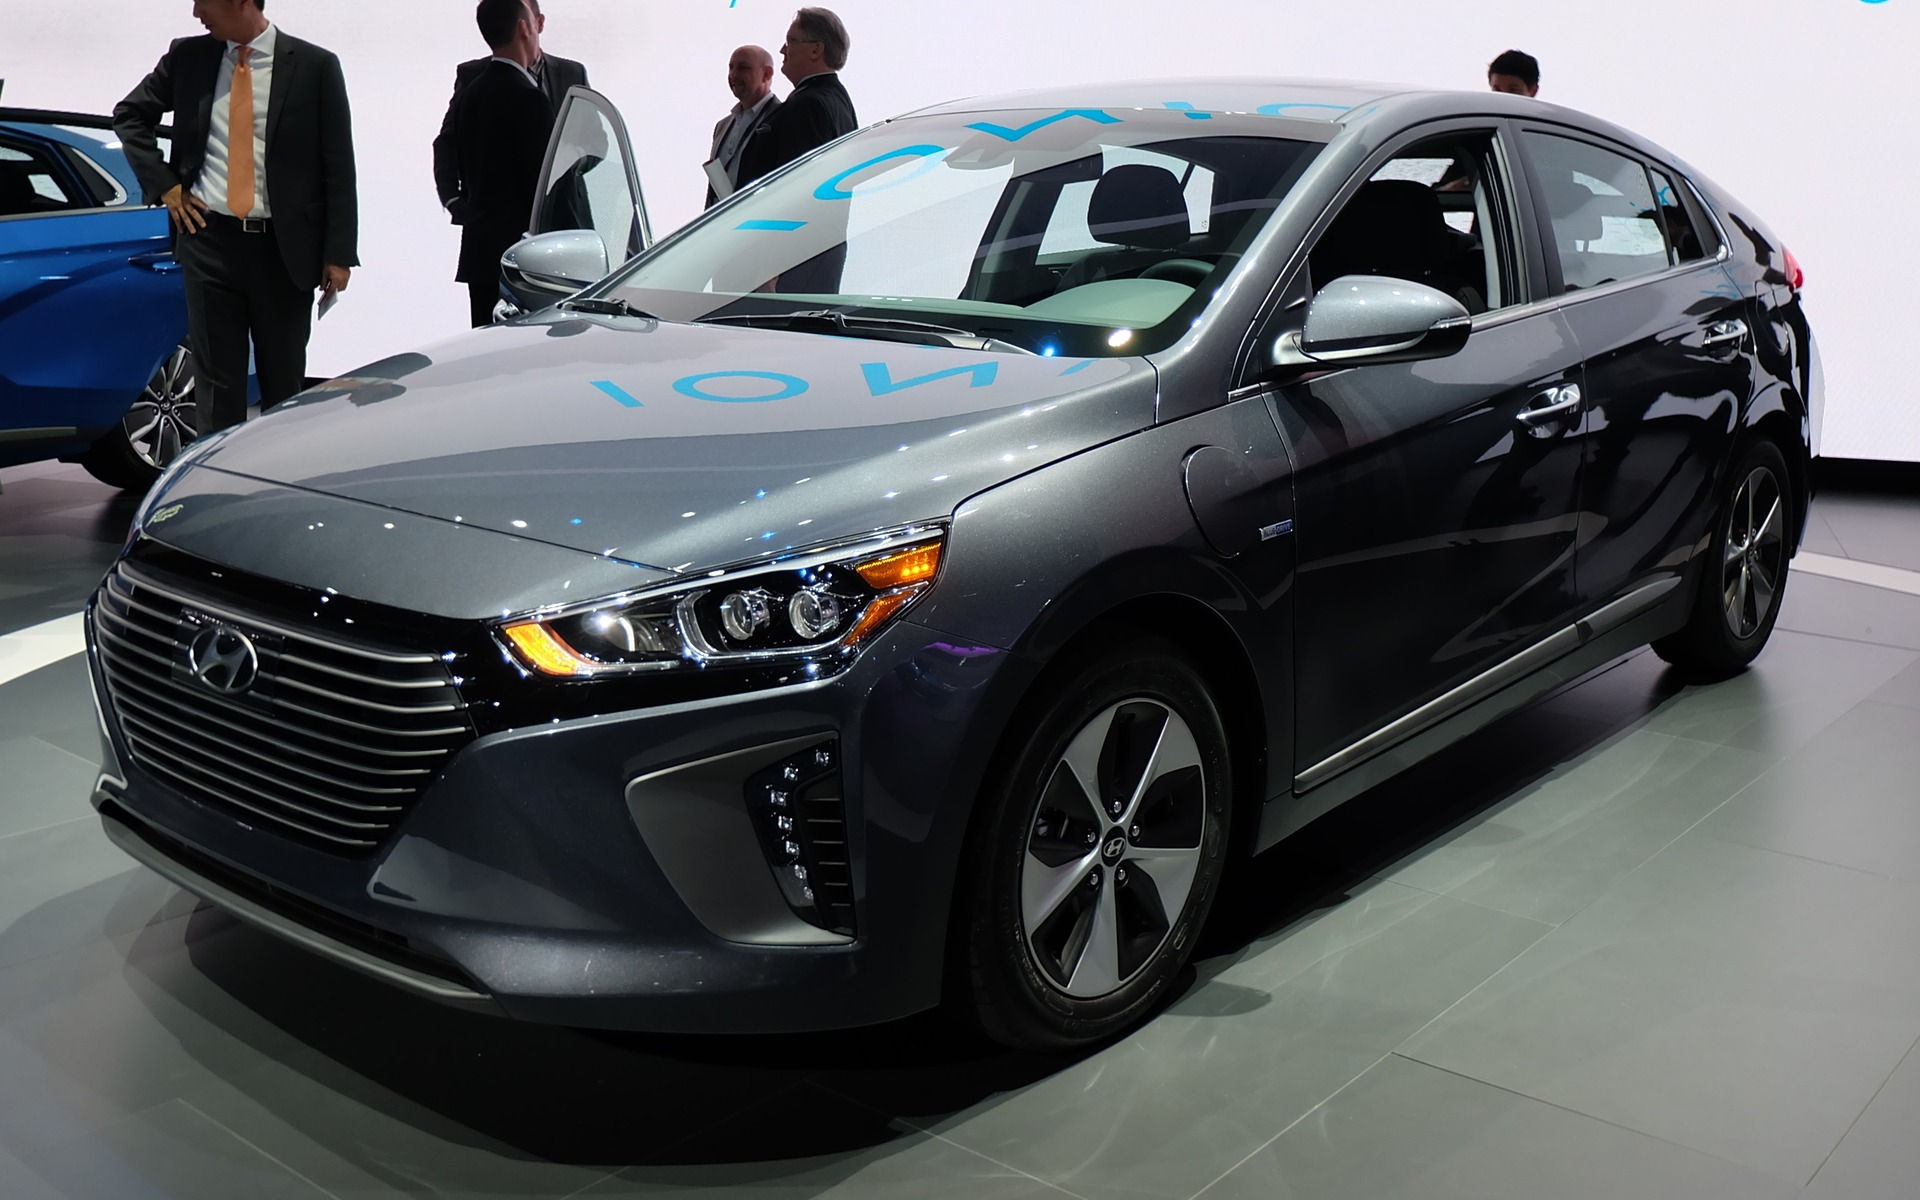 2019 Hyundai i ioniq Concept photo - 3